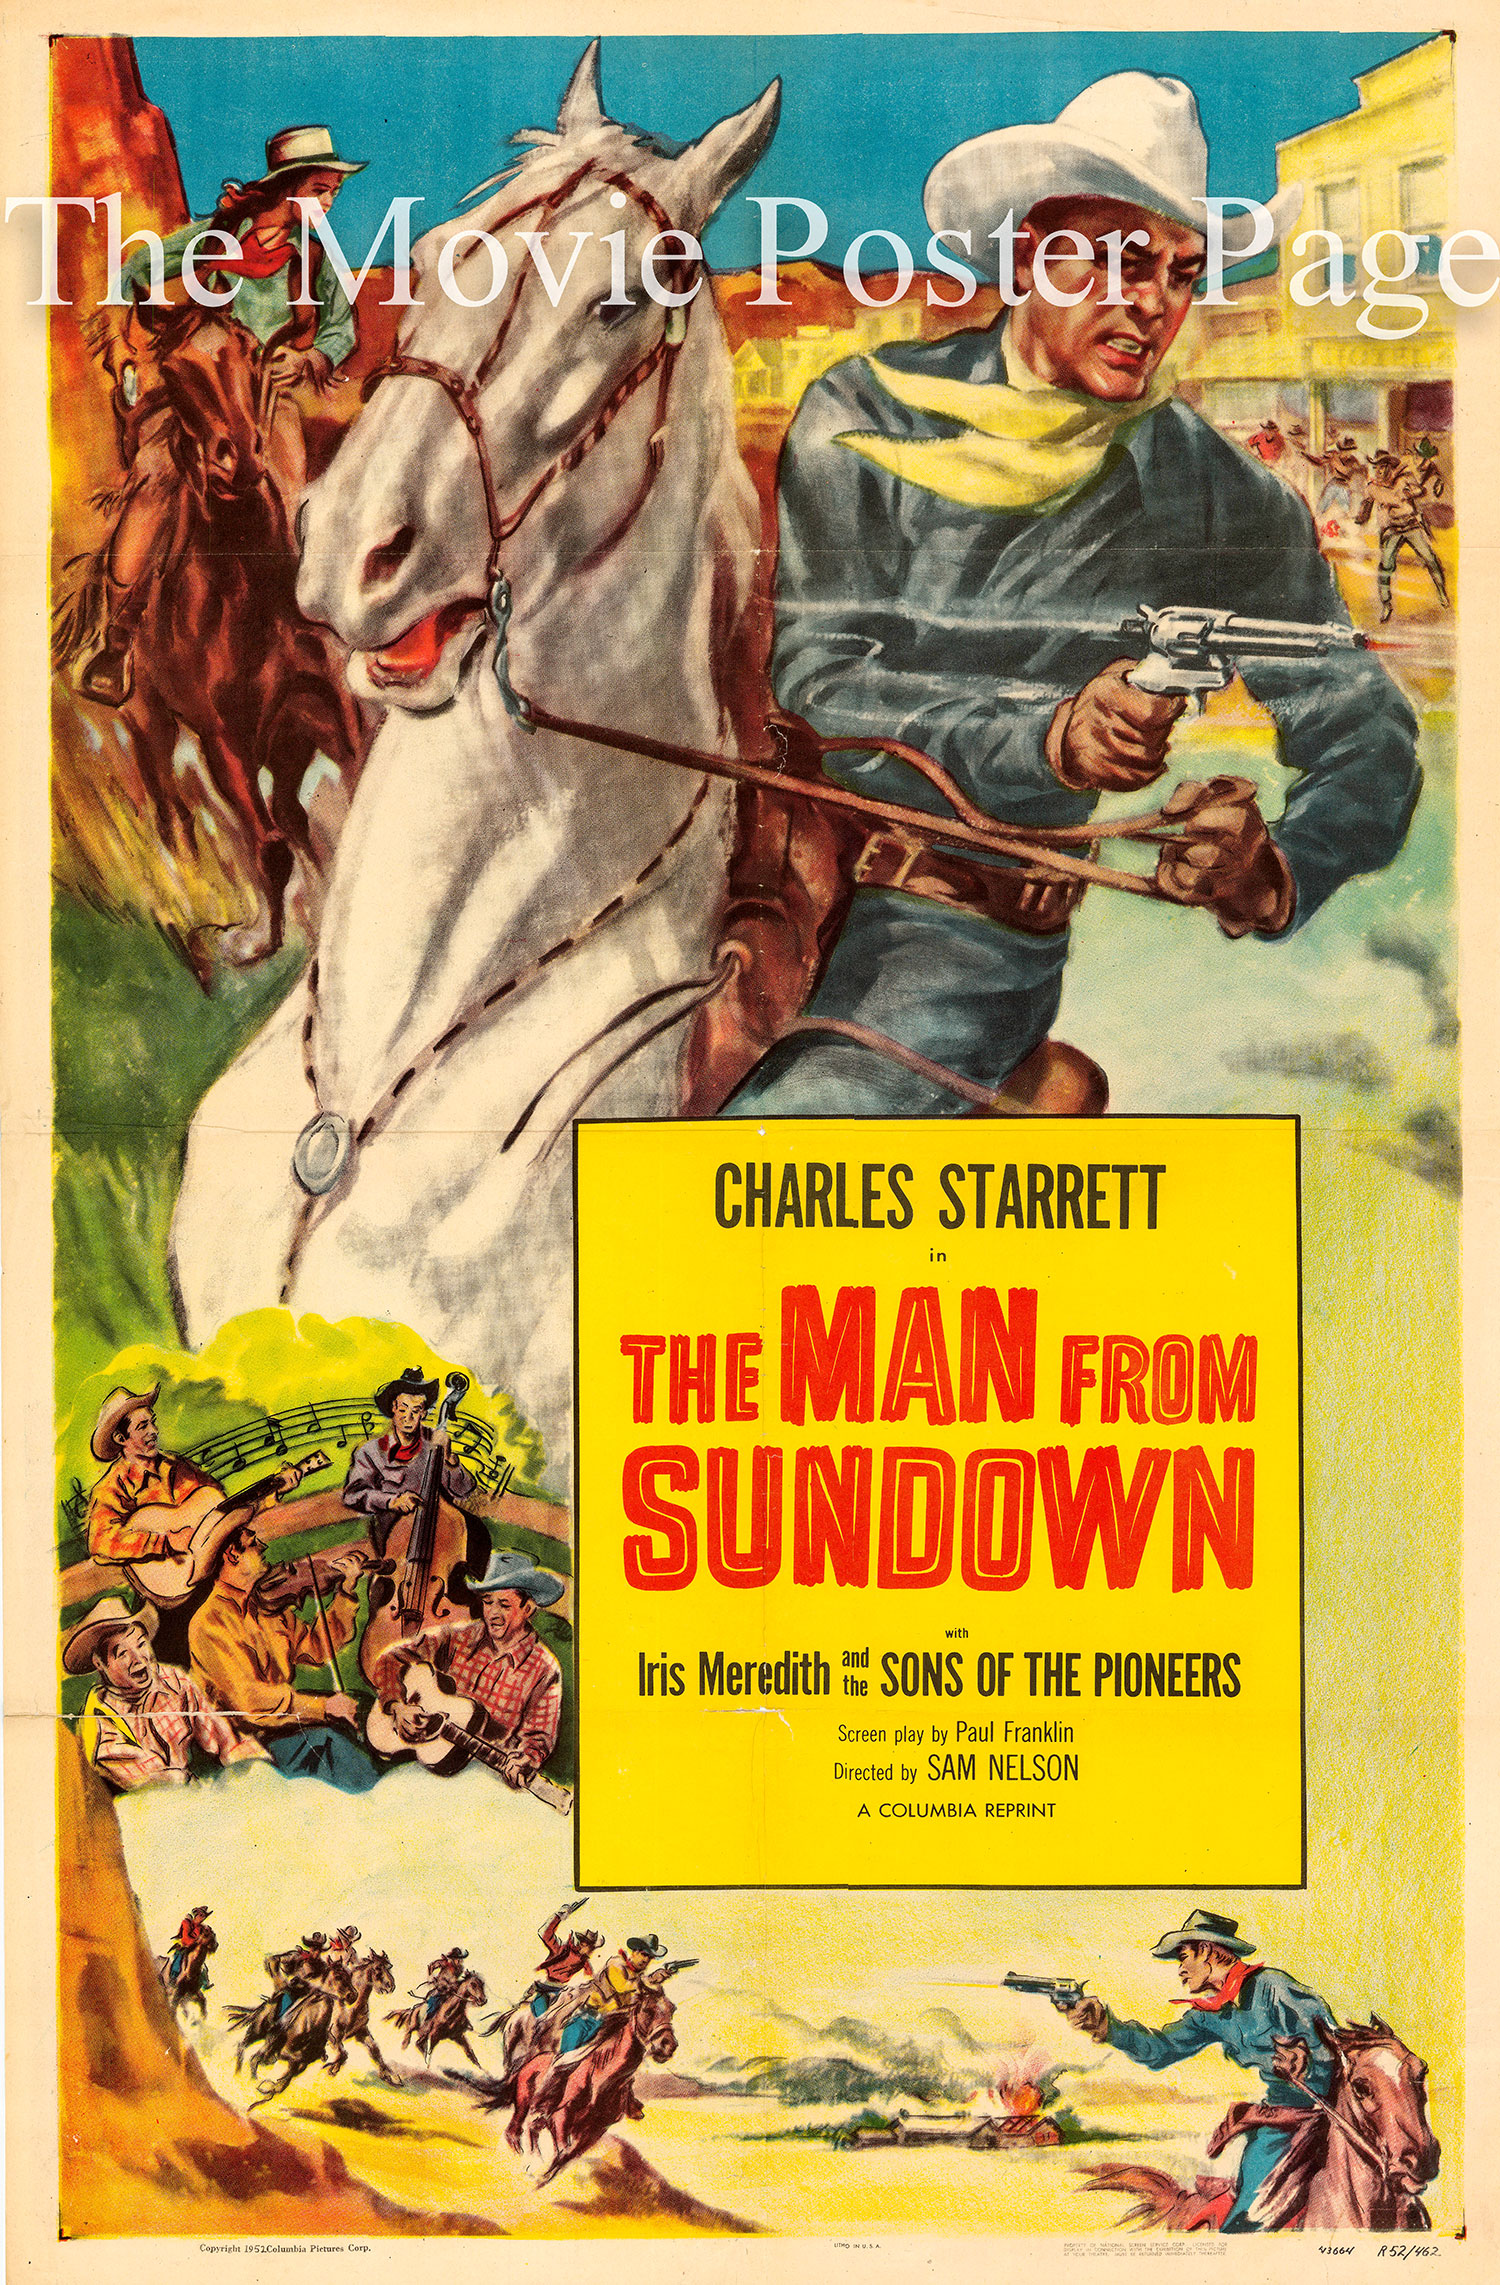 Pictured is a US one-sheet promotional poster for a 1952 rerelease of the 1939 Sam Nelson film The Man from Sundown starring Charles Starrett.